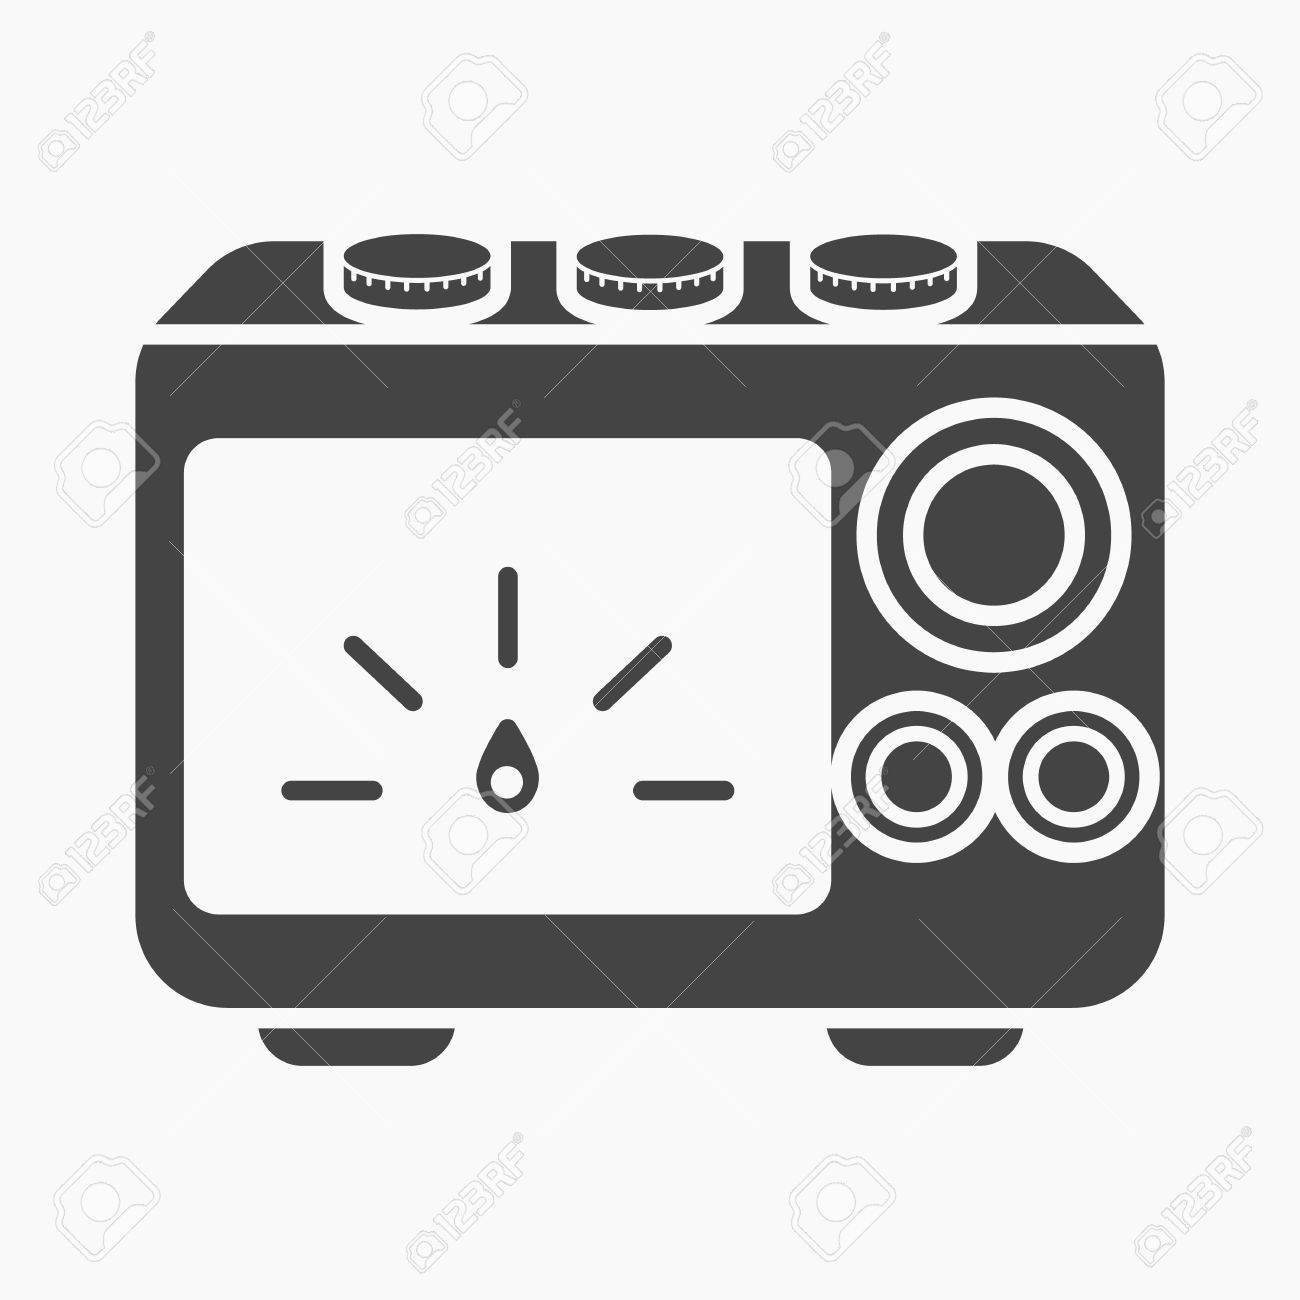 Power Supply Tattoo Icon Cartoon Single From The Big Studio Collection Stock